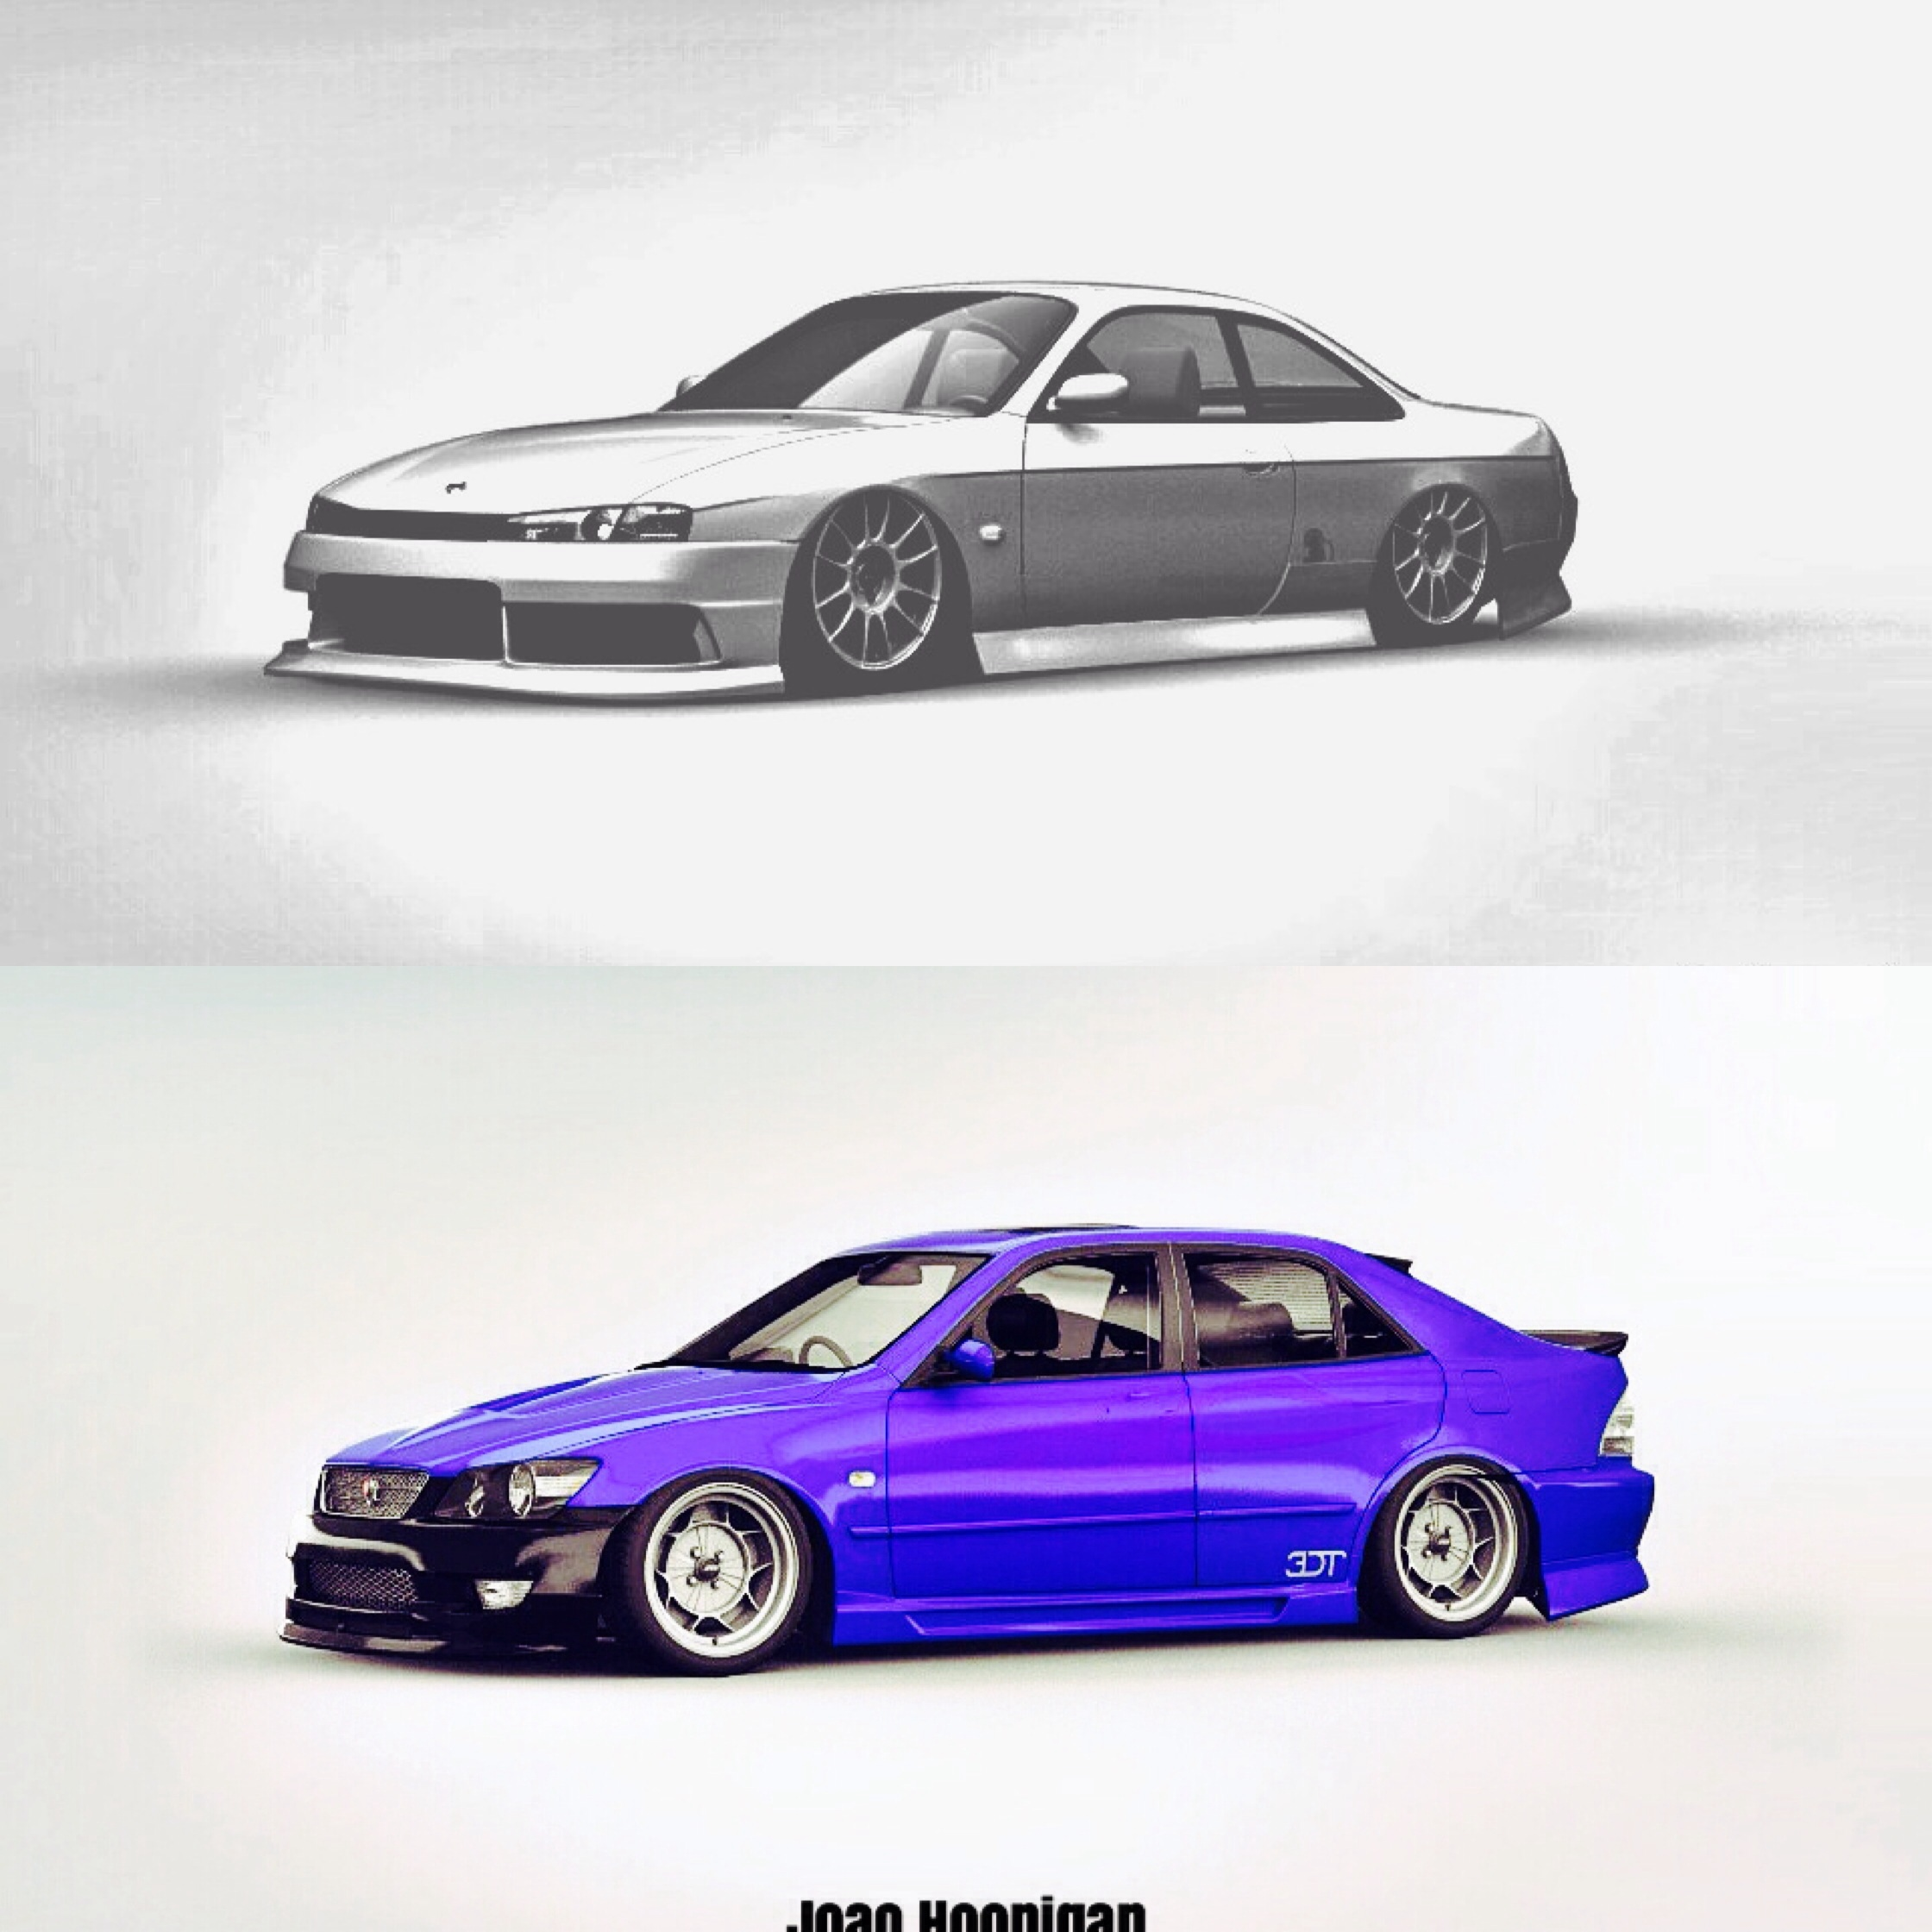 The s14 was my first 3D tuning tune and the Altezza was my second